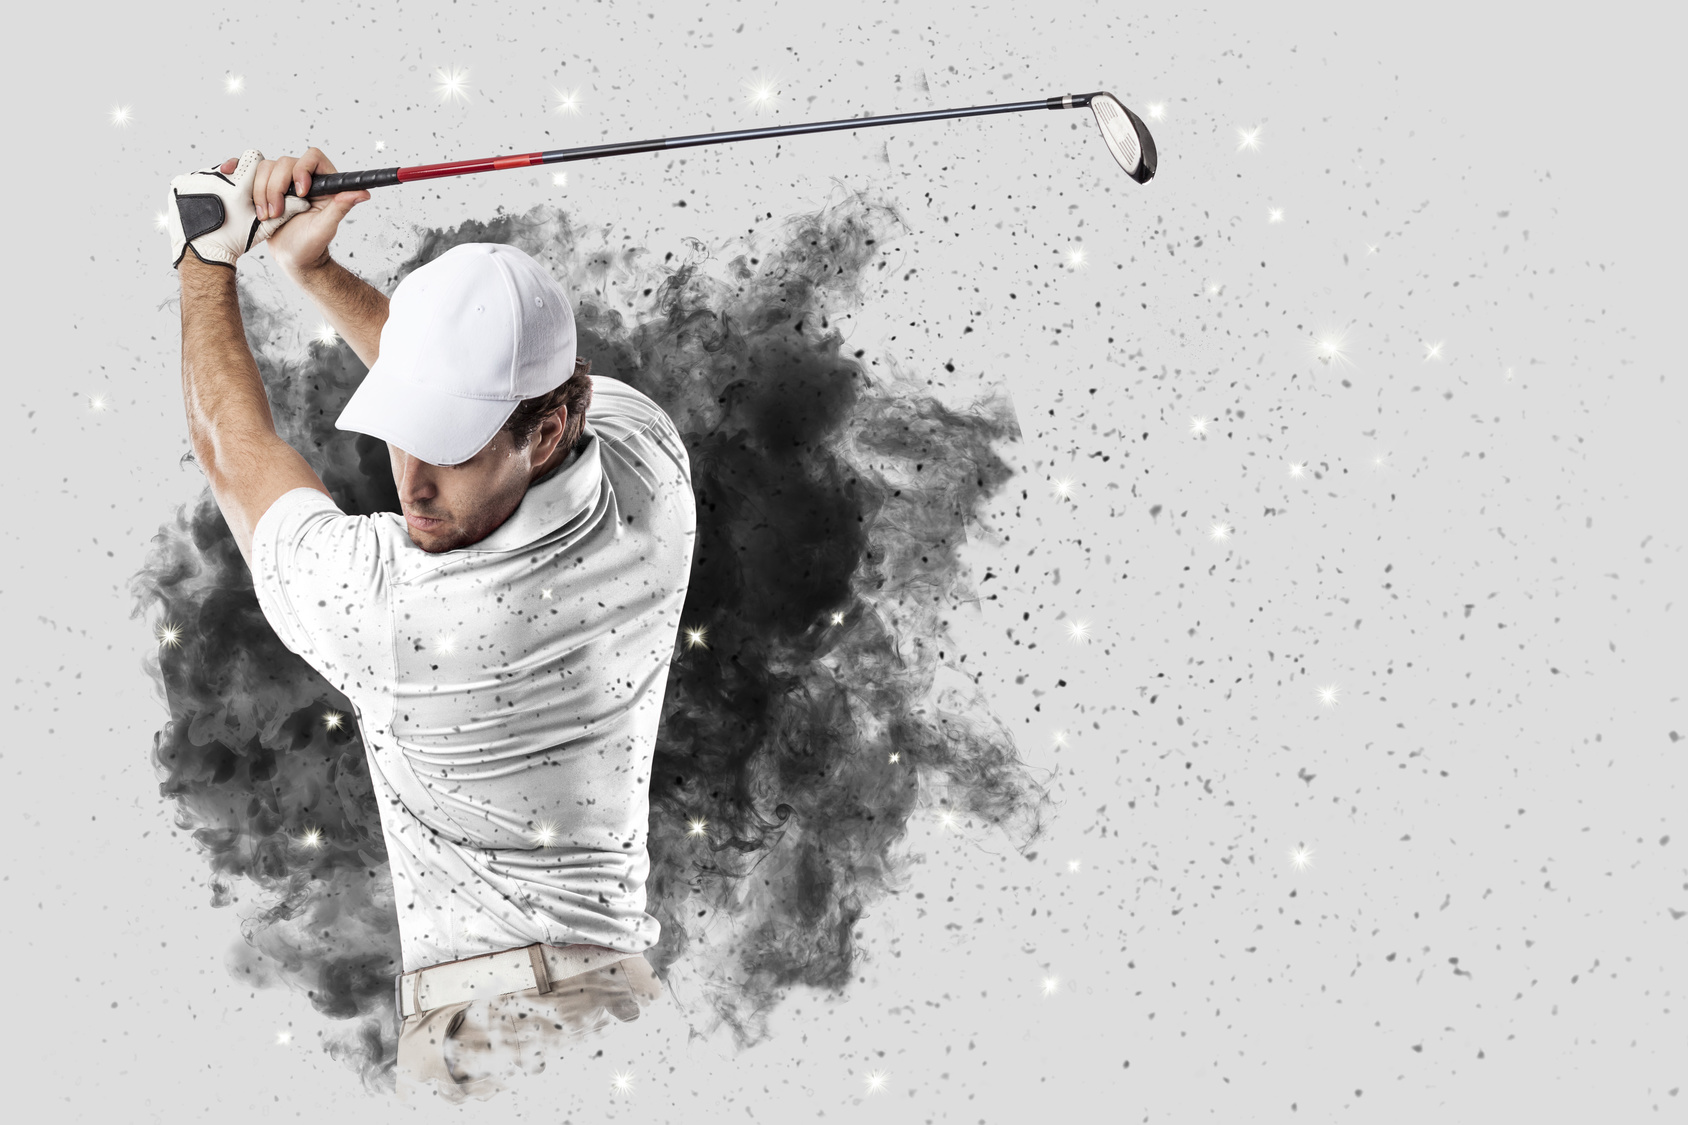 Average Golf Swing Speed Chart - Basics & Numbers You Need to Know